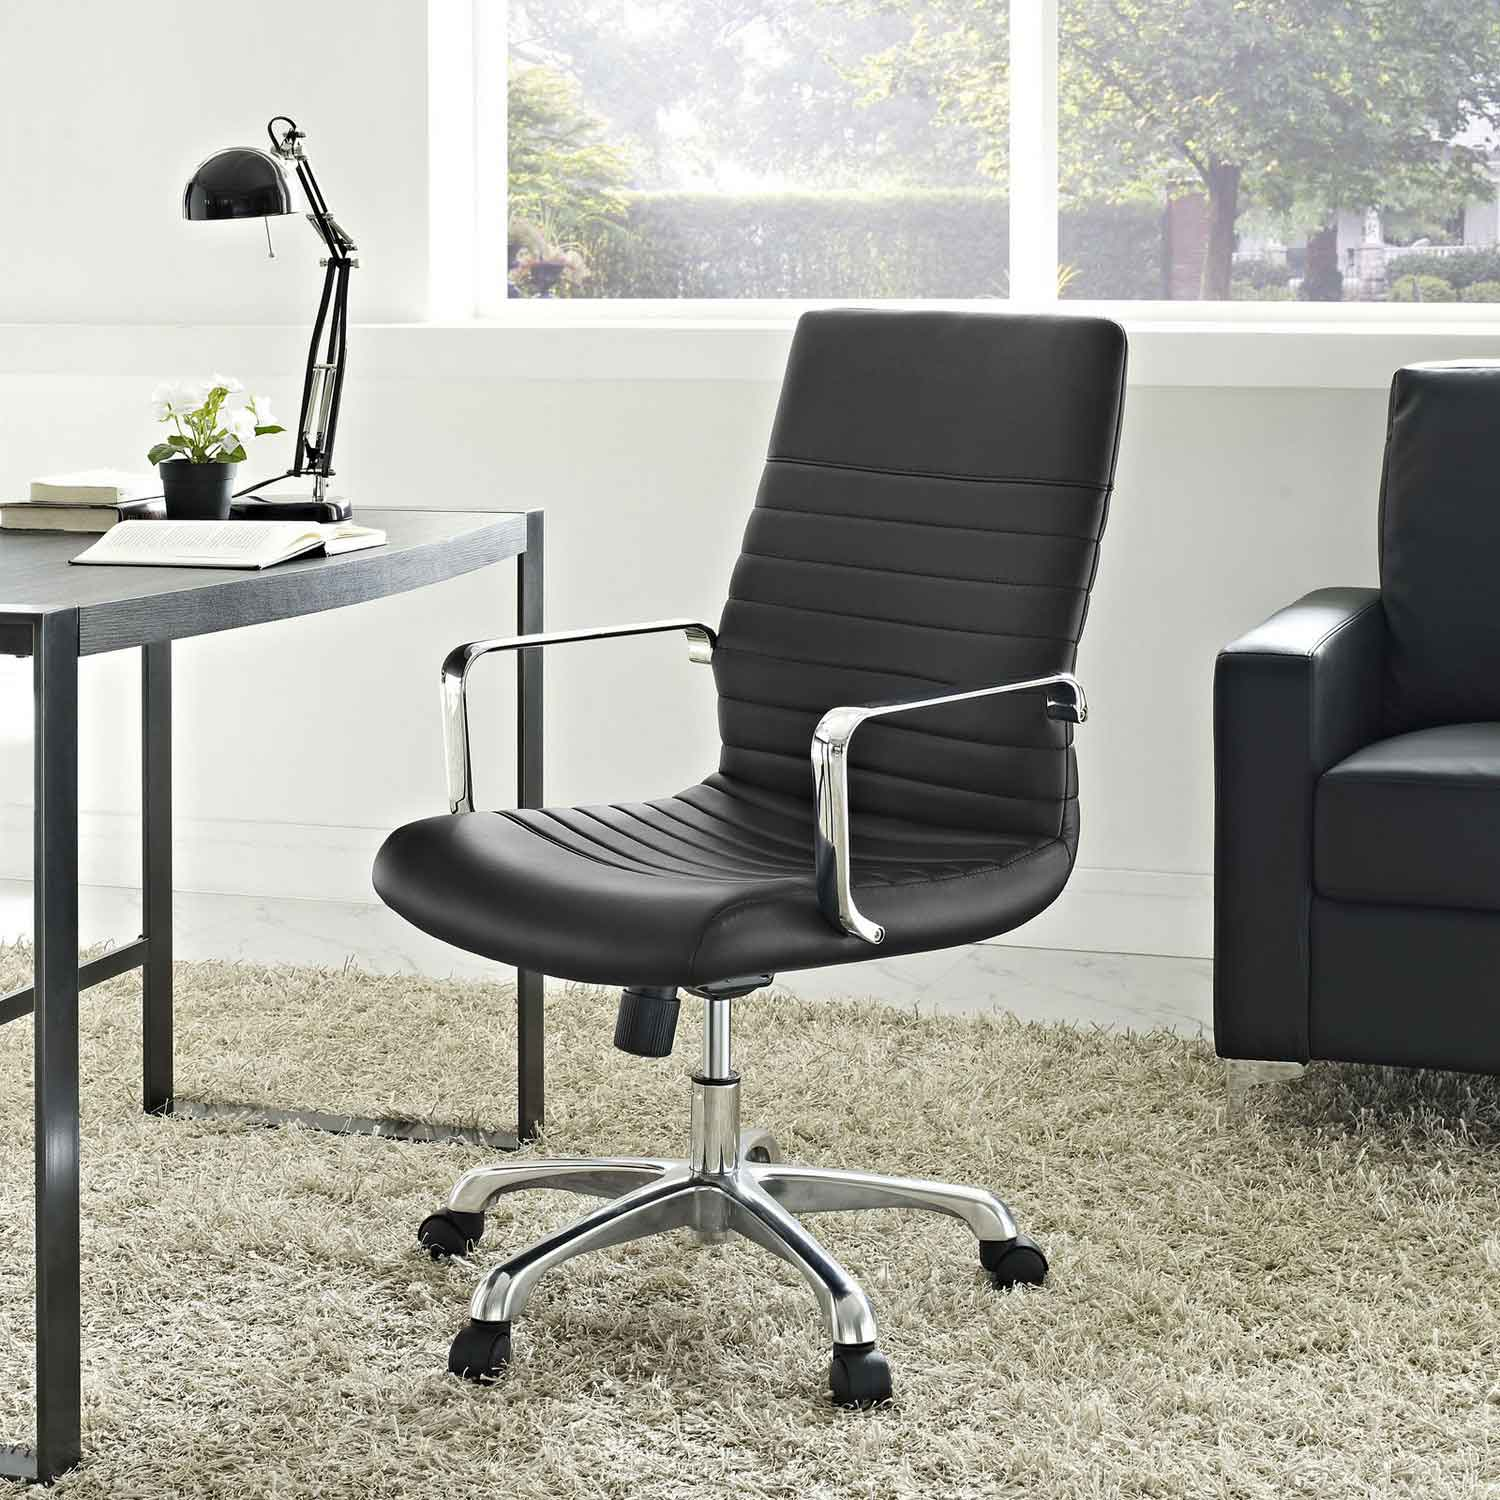 Modway Finesse Mid Back Office Chair - Black